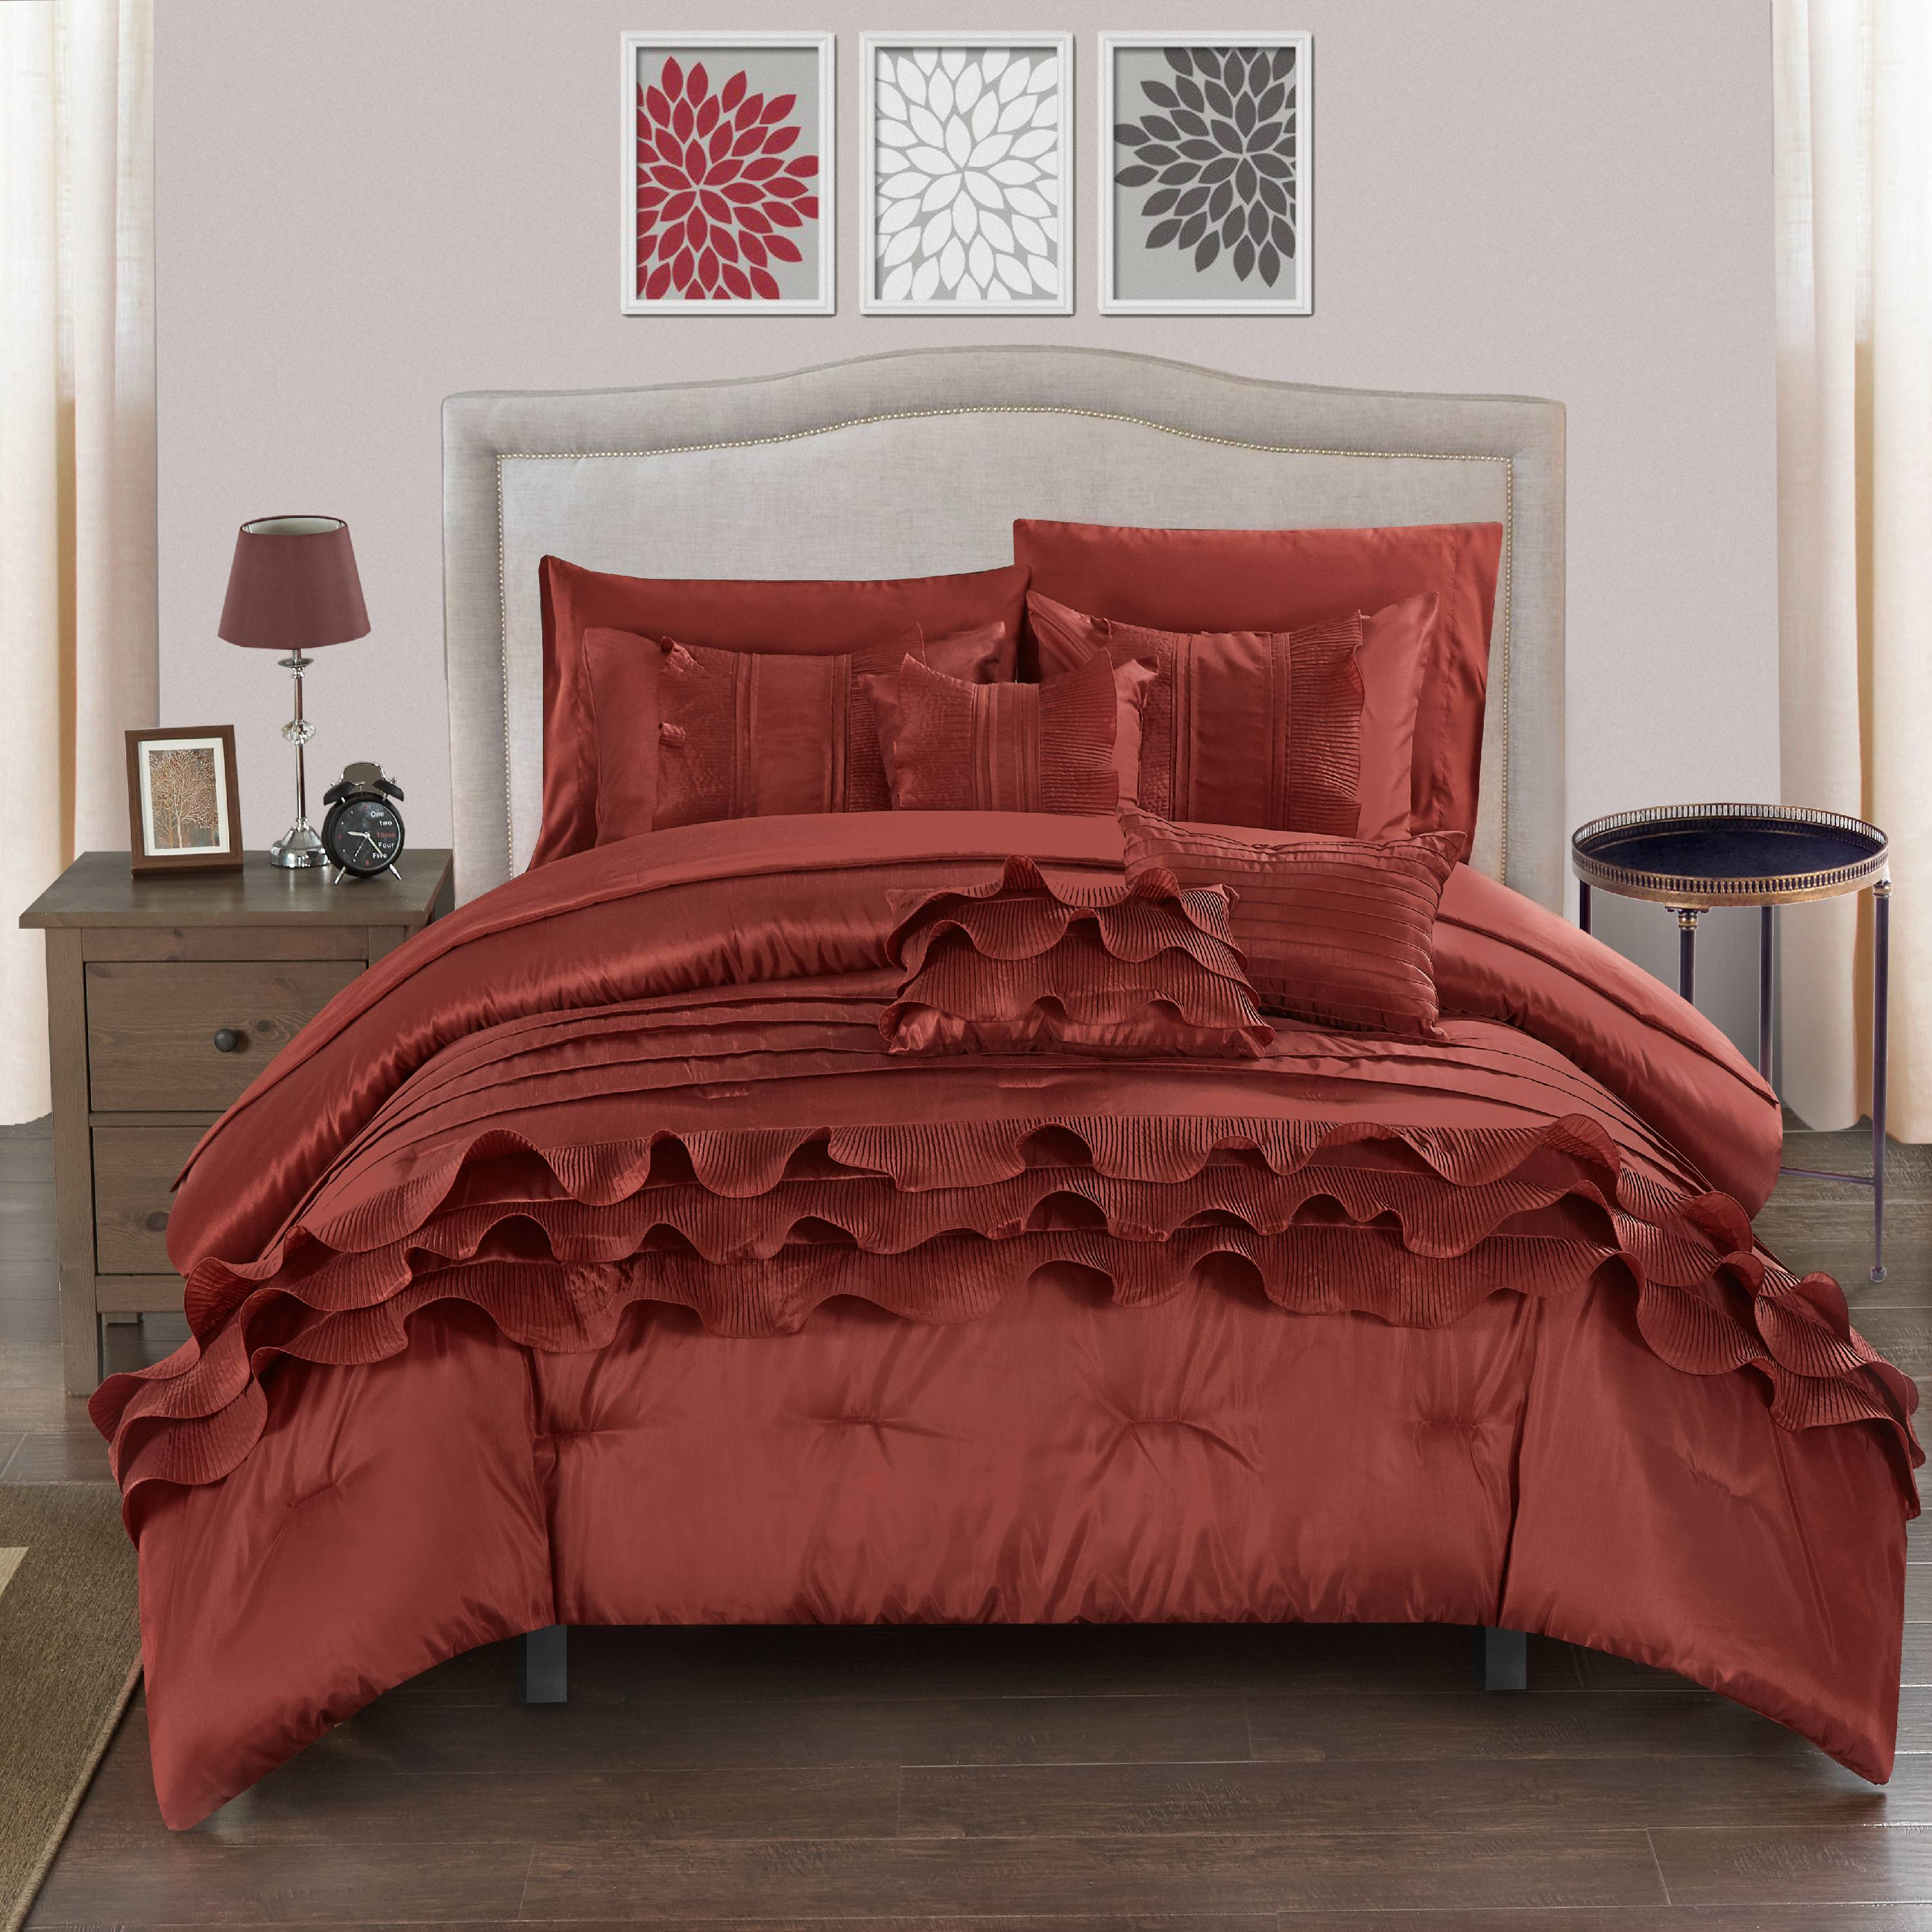 Chic Home 10-Piece Samson Rouching Pleated Ruffles Complete Queen Bed In a Bag Comforter Set Brick Sheets set and Decorative pillows included